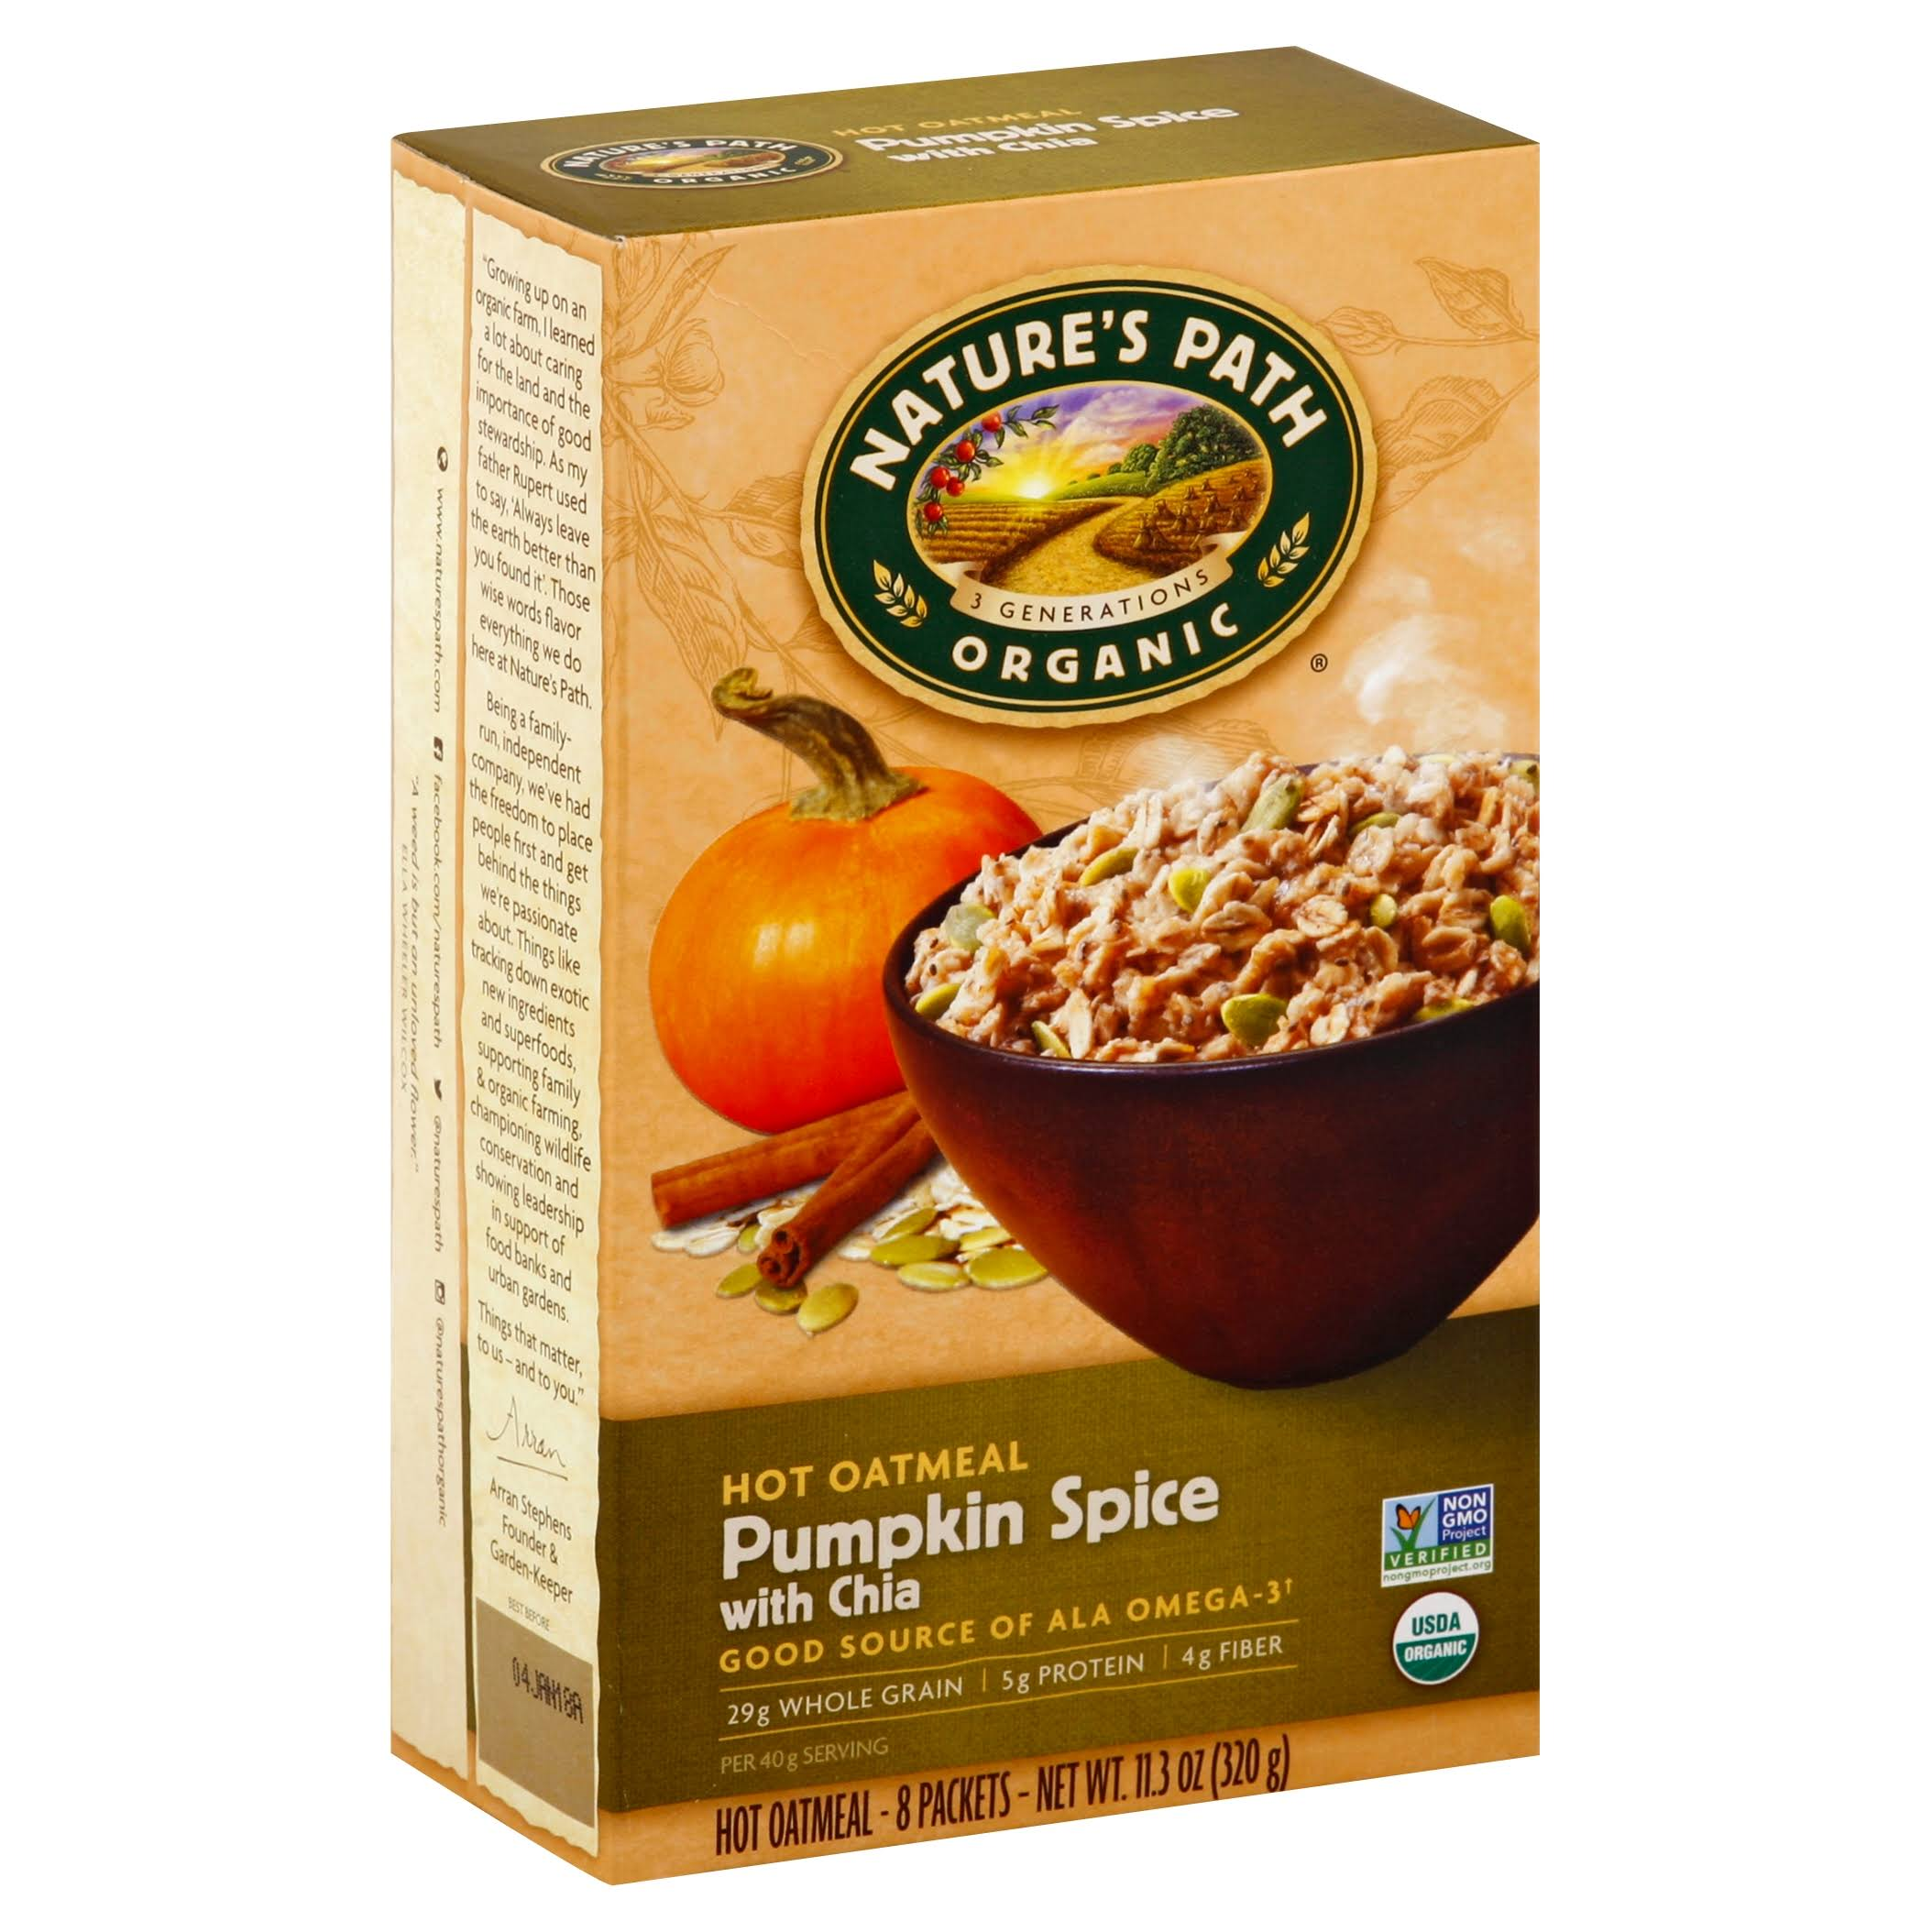 Natures Path Organic Oatmeal, Hot, Pumpkin Spice with Chia - 8 packets, 11.3 oz